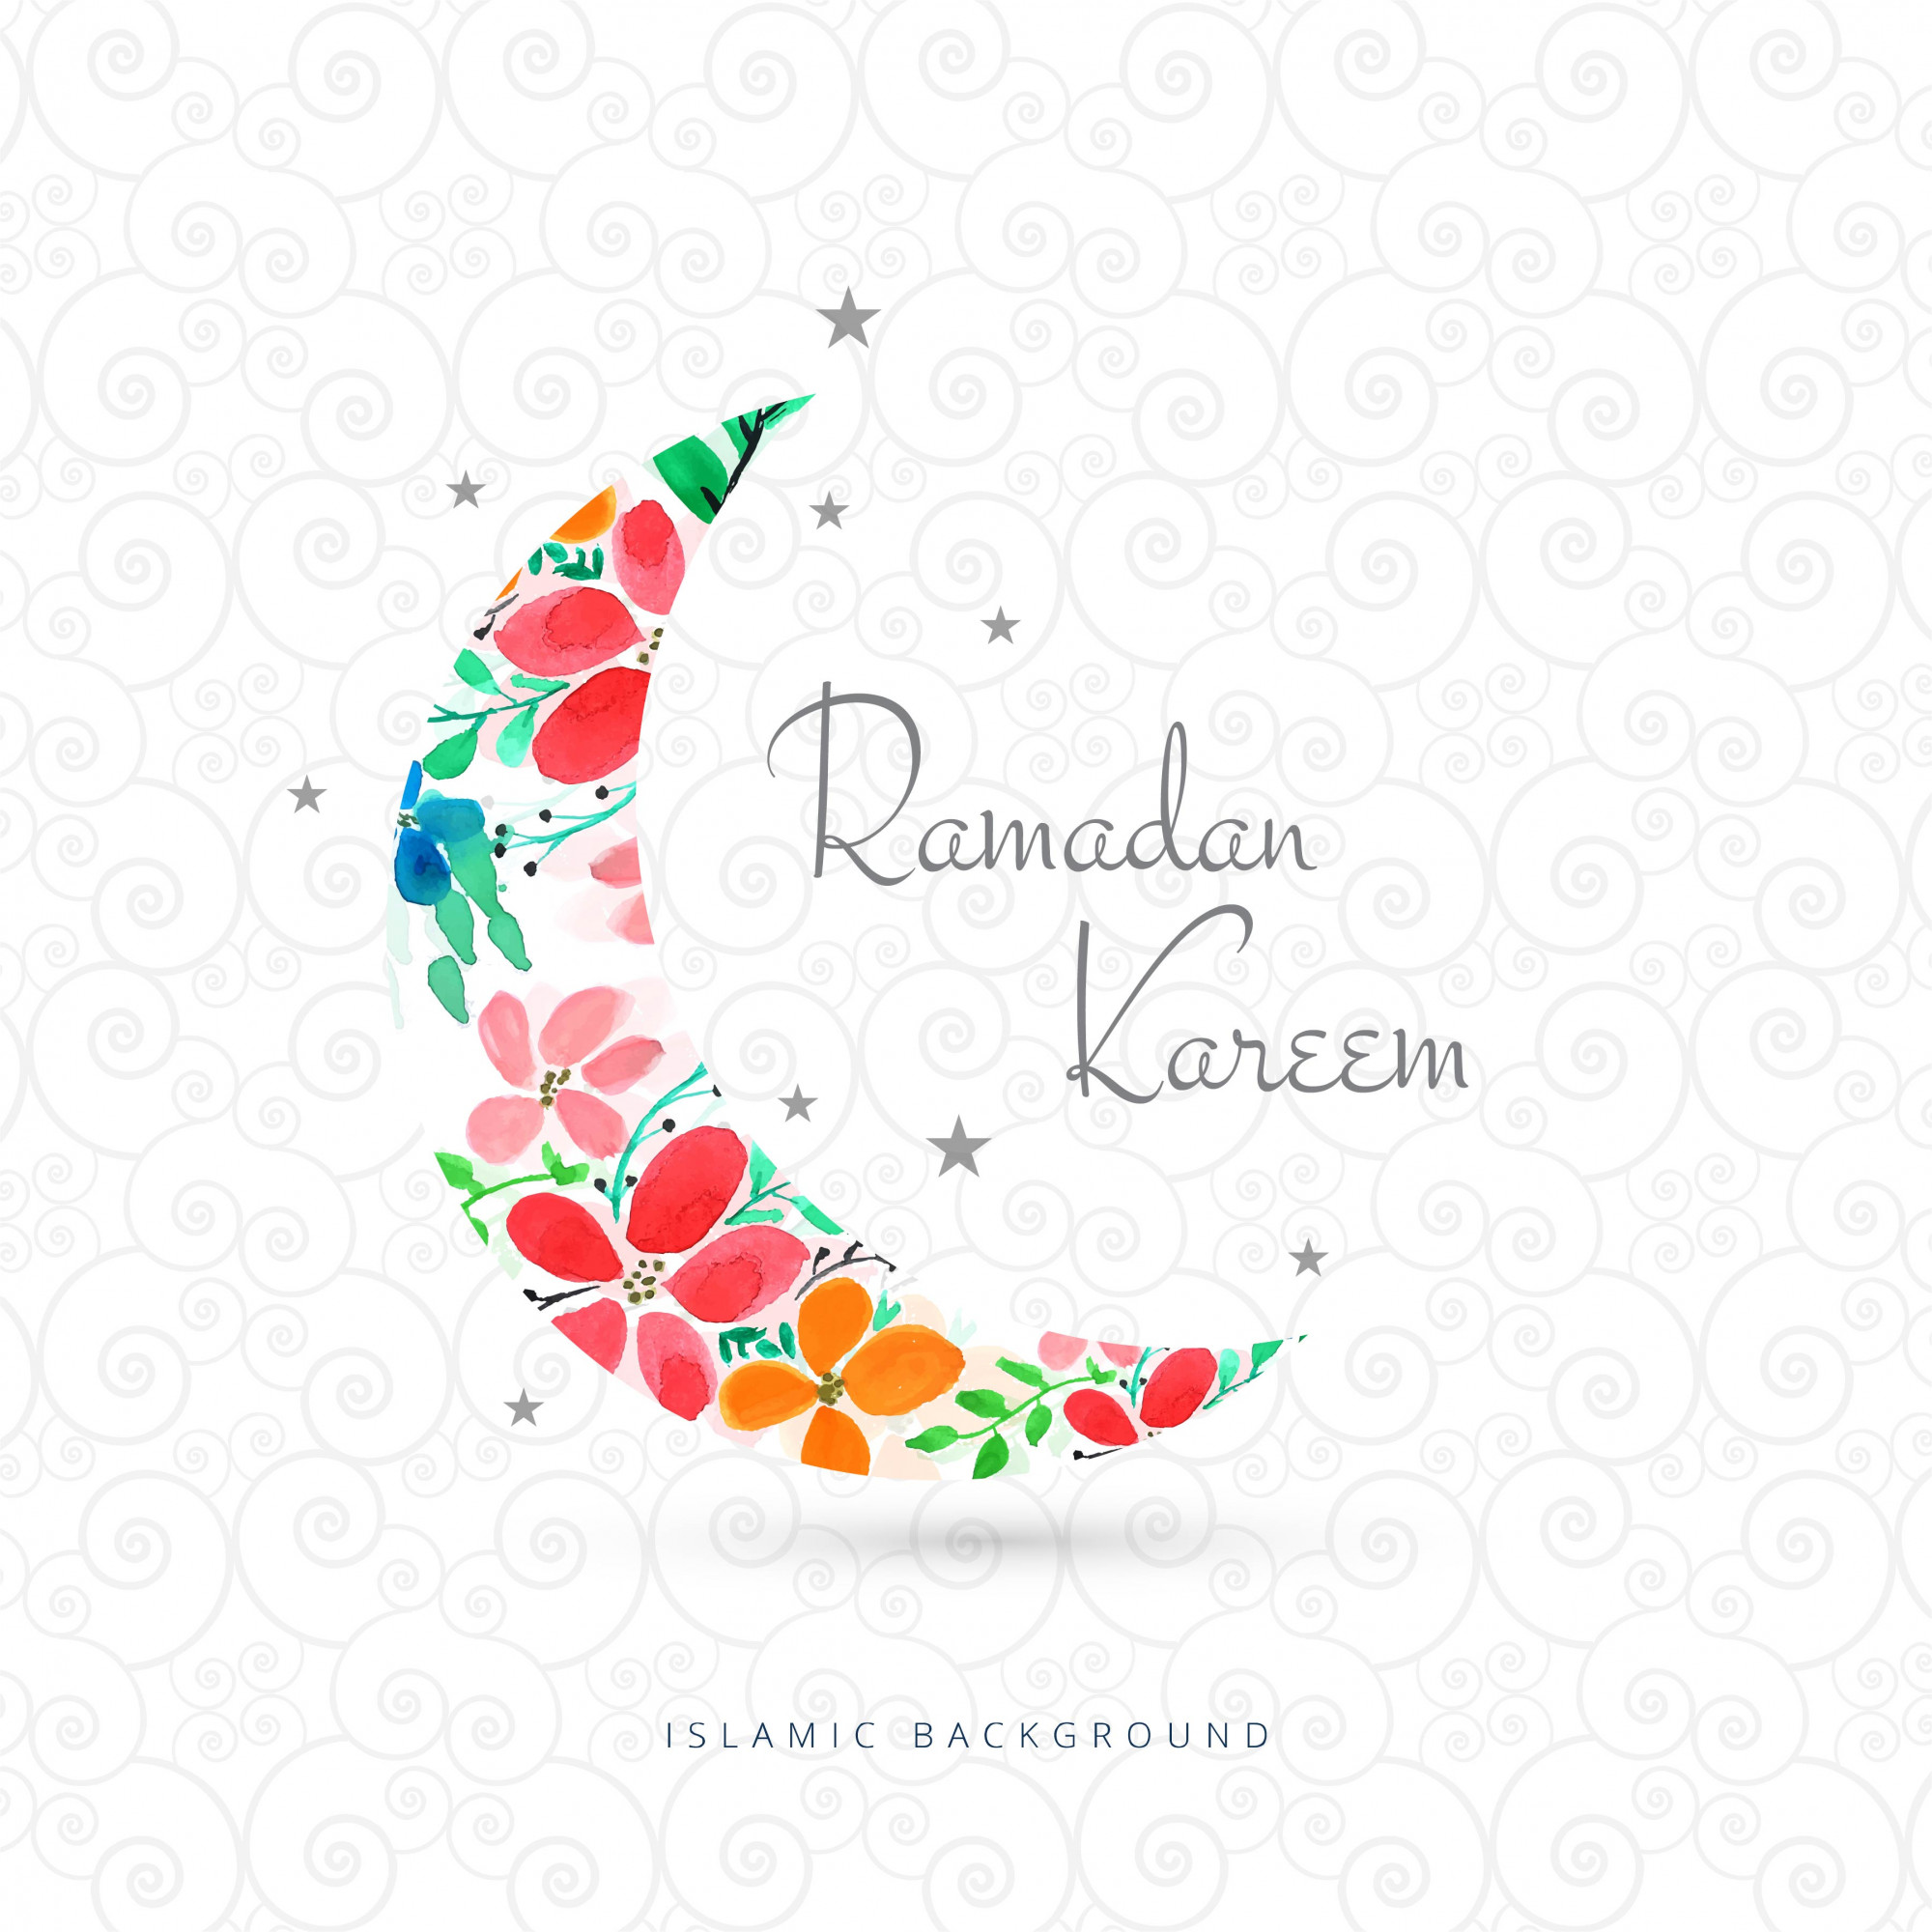 Ramadan kareem greeting card with moon design